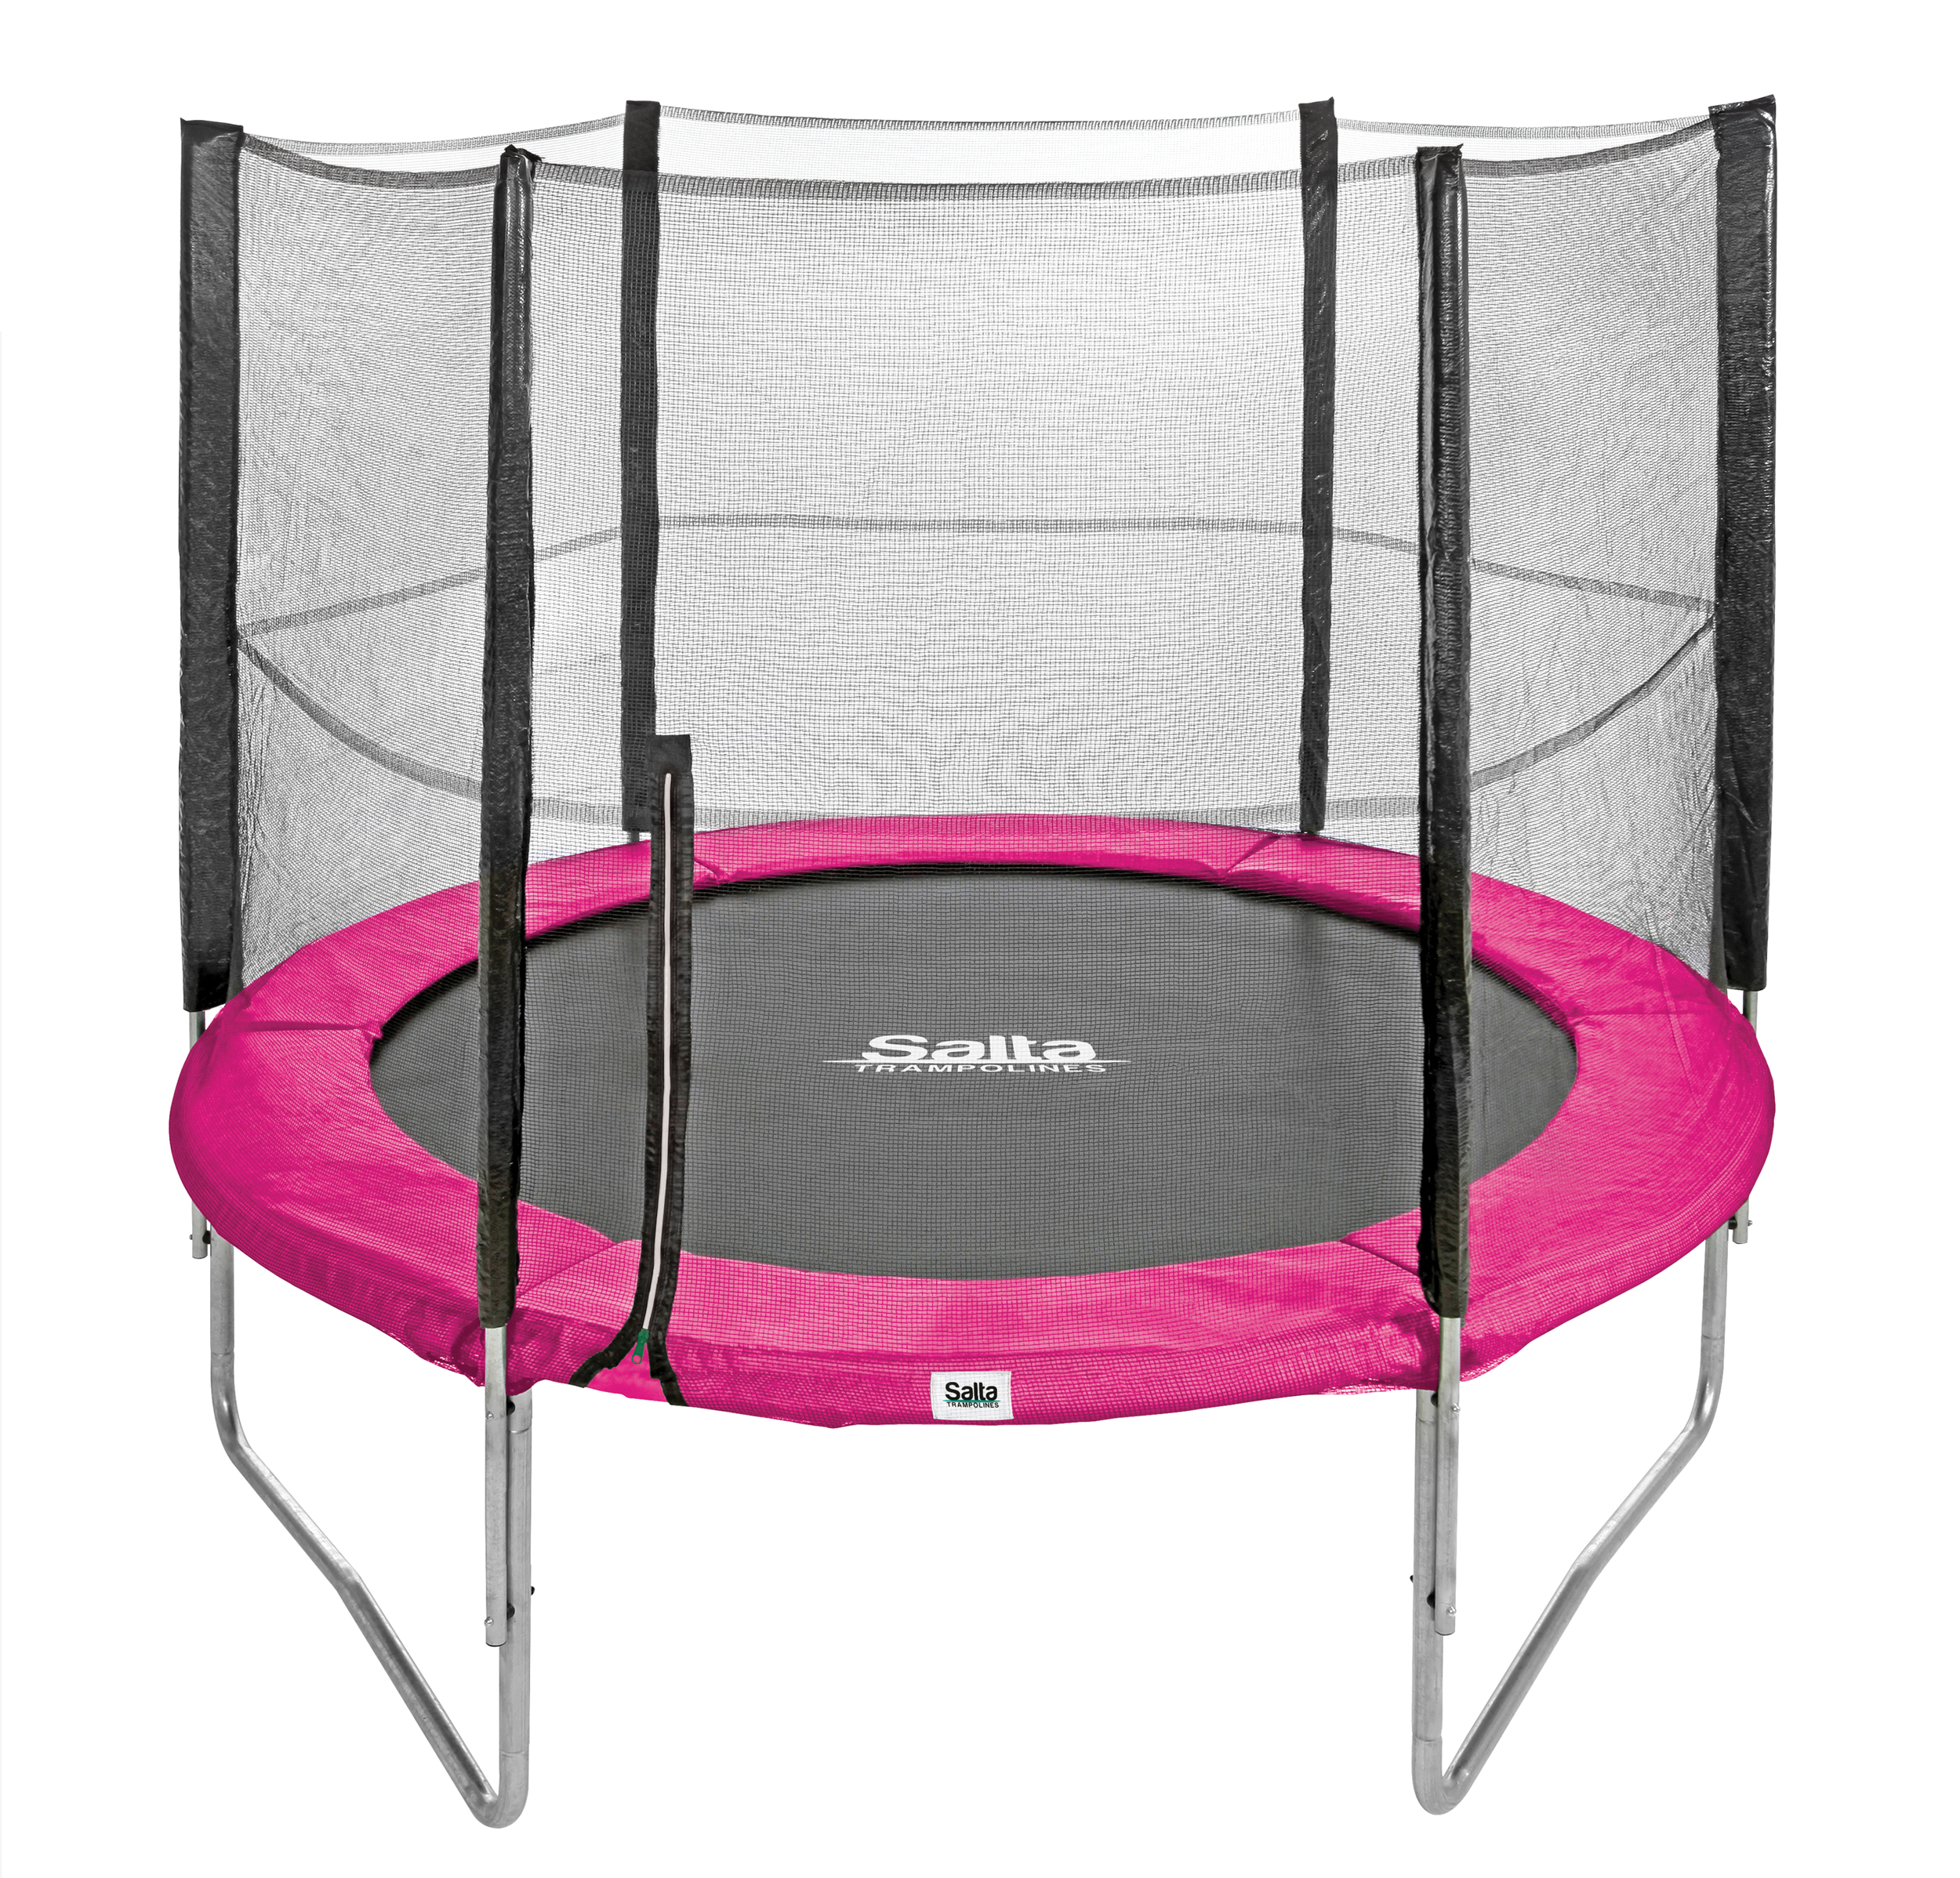 Image of   Salta 6 ft Disport Combo Trampolin runde - 183 cm - Pink